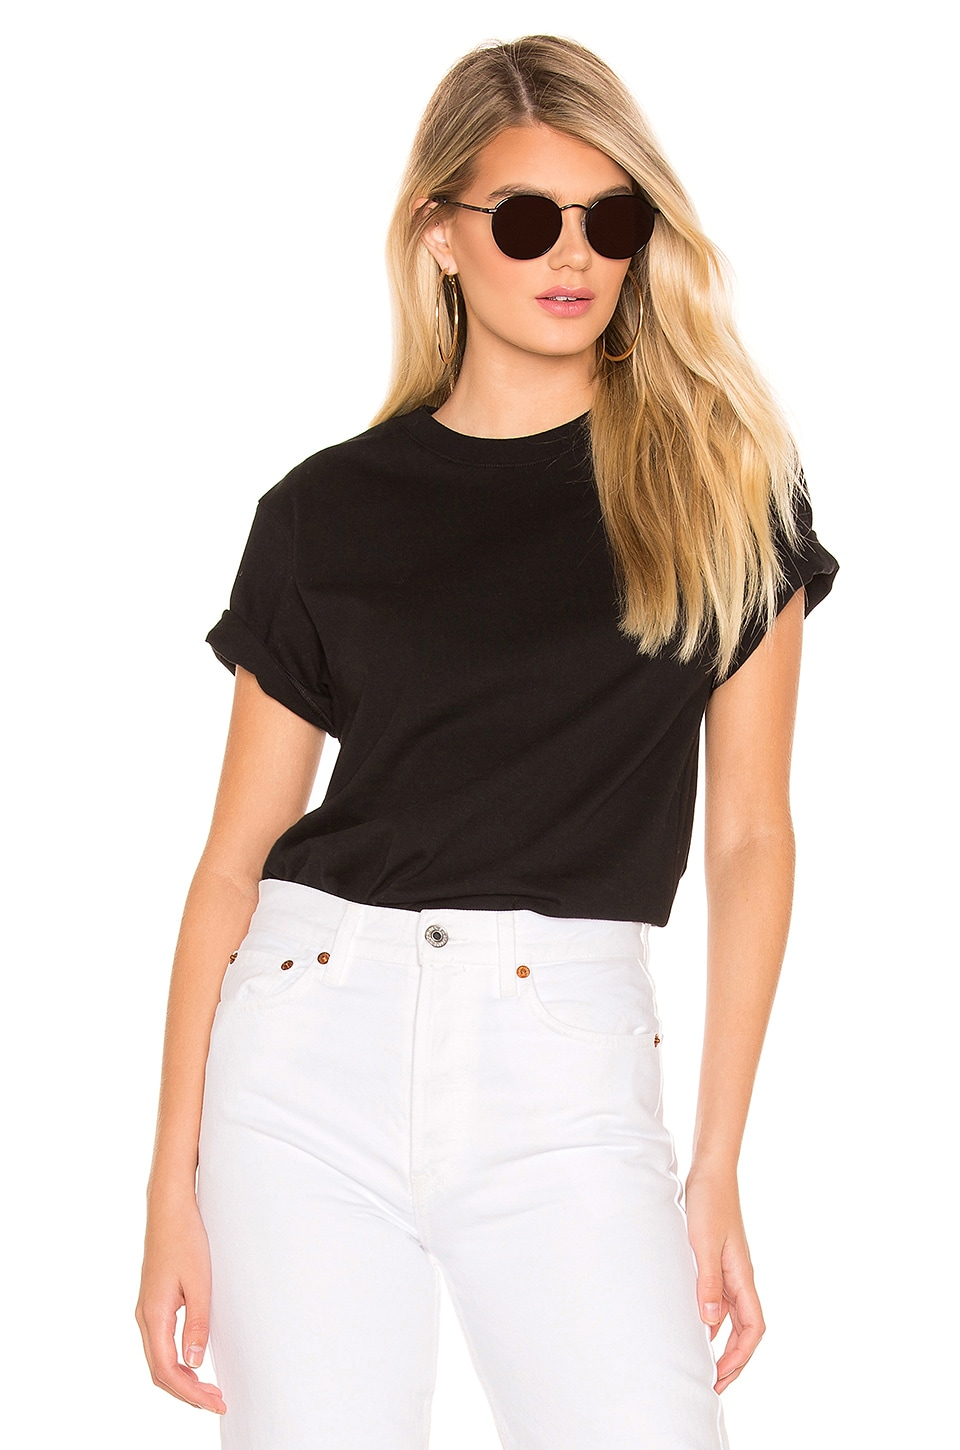 x karla T-SHIRT THE CLASSIC TEE